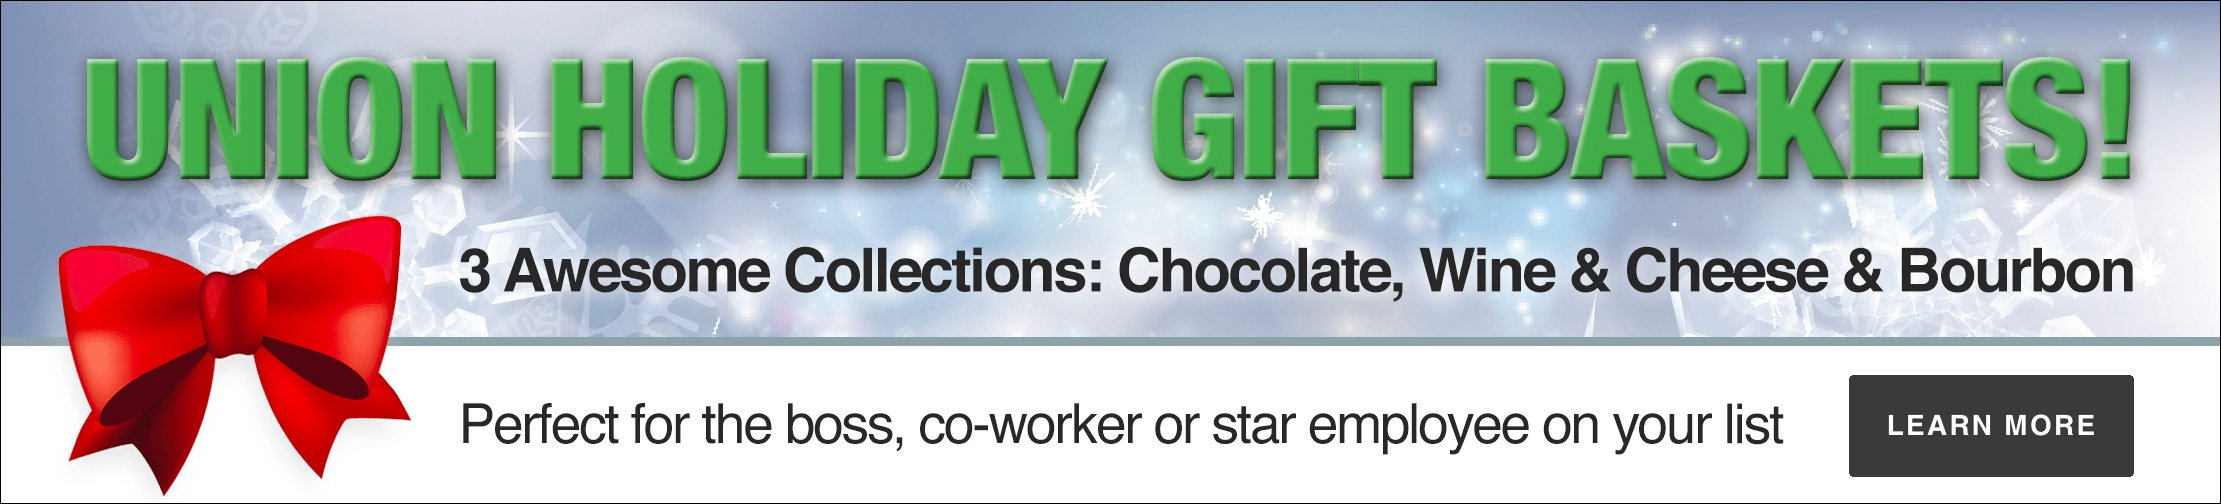 Union-Holiday-Gift-Baskets-Banner